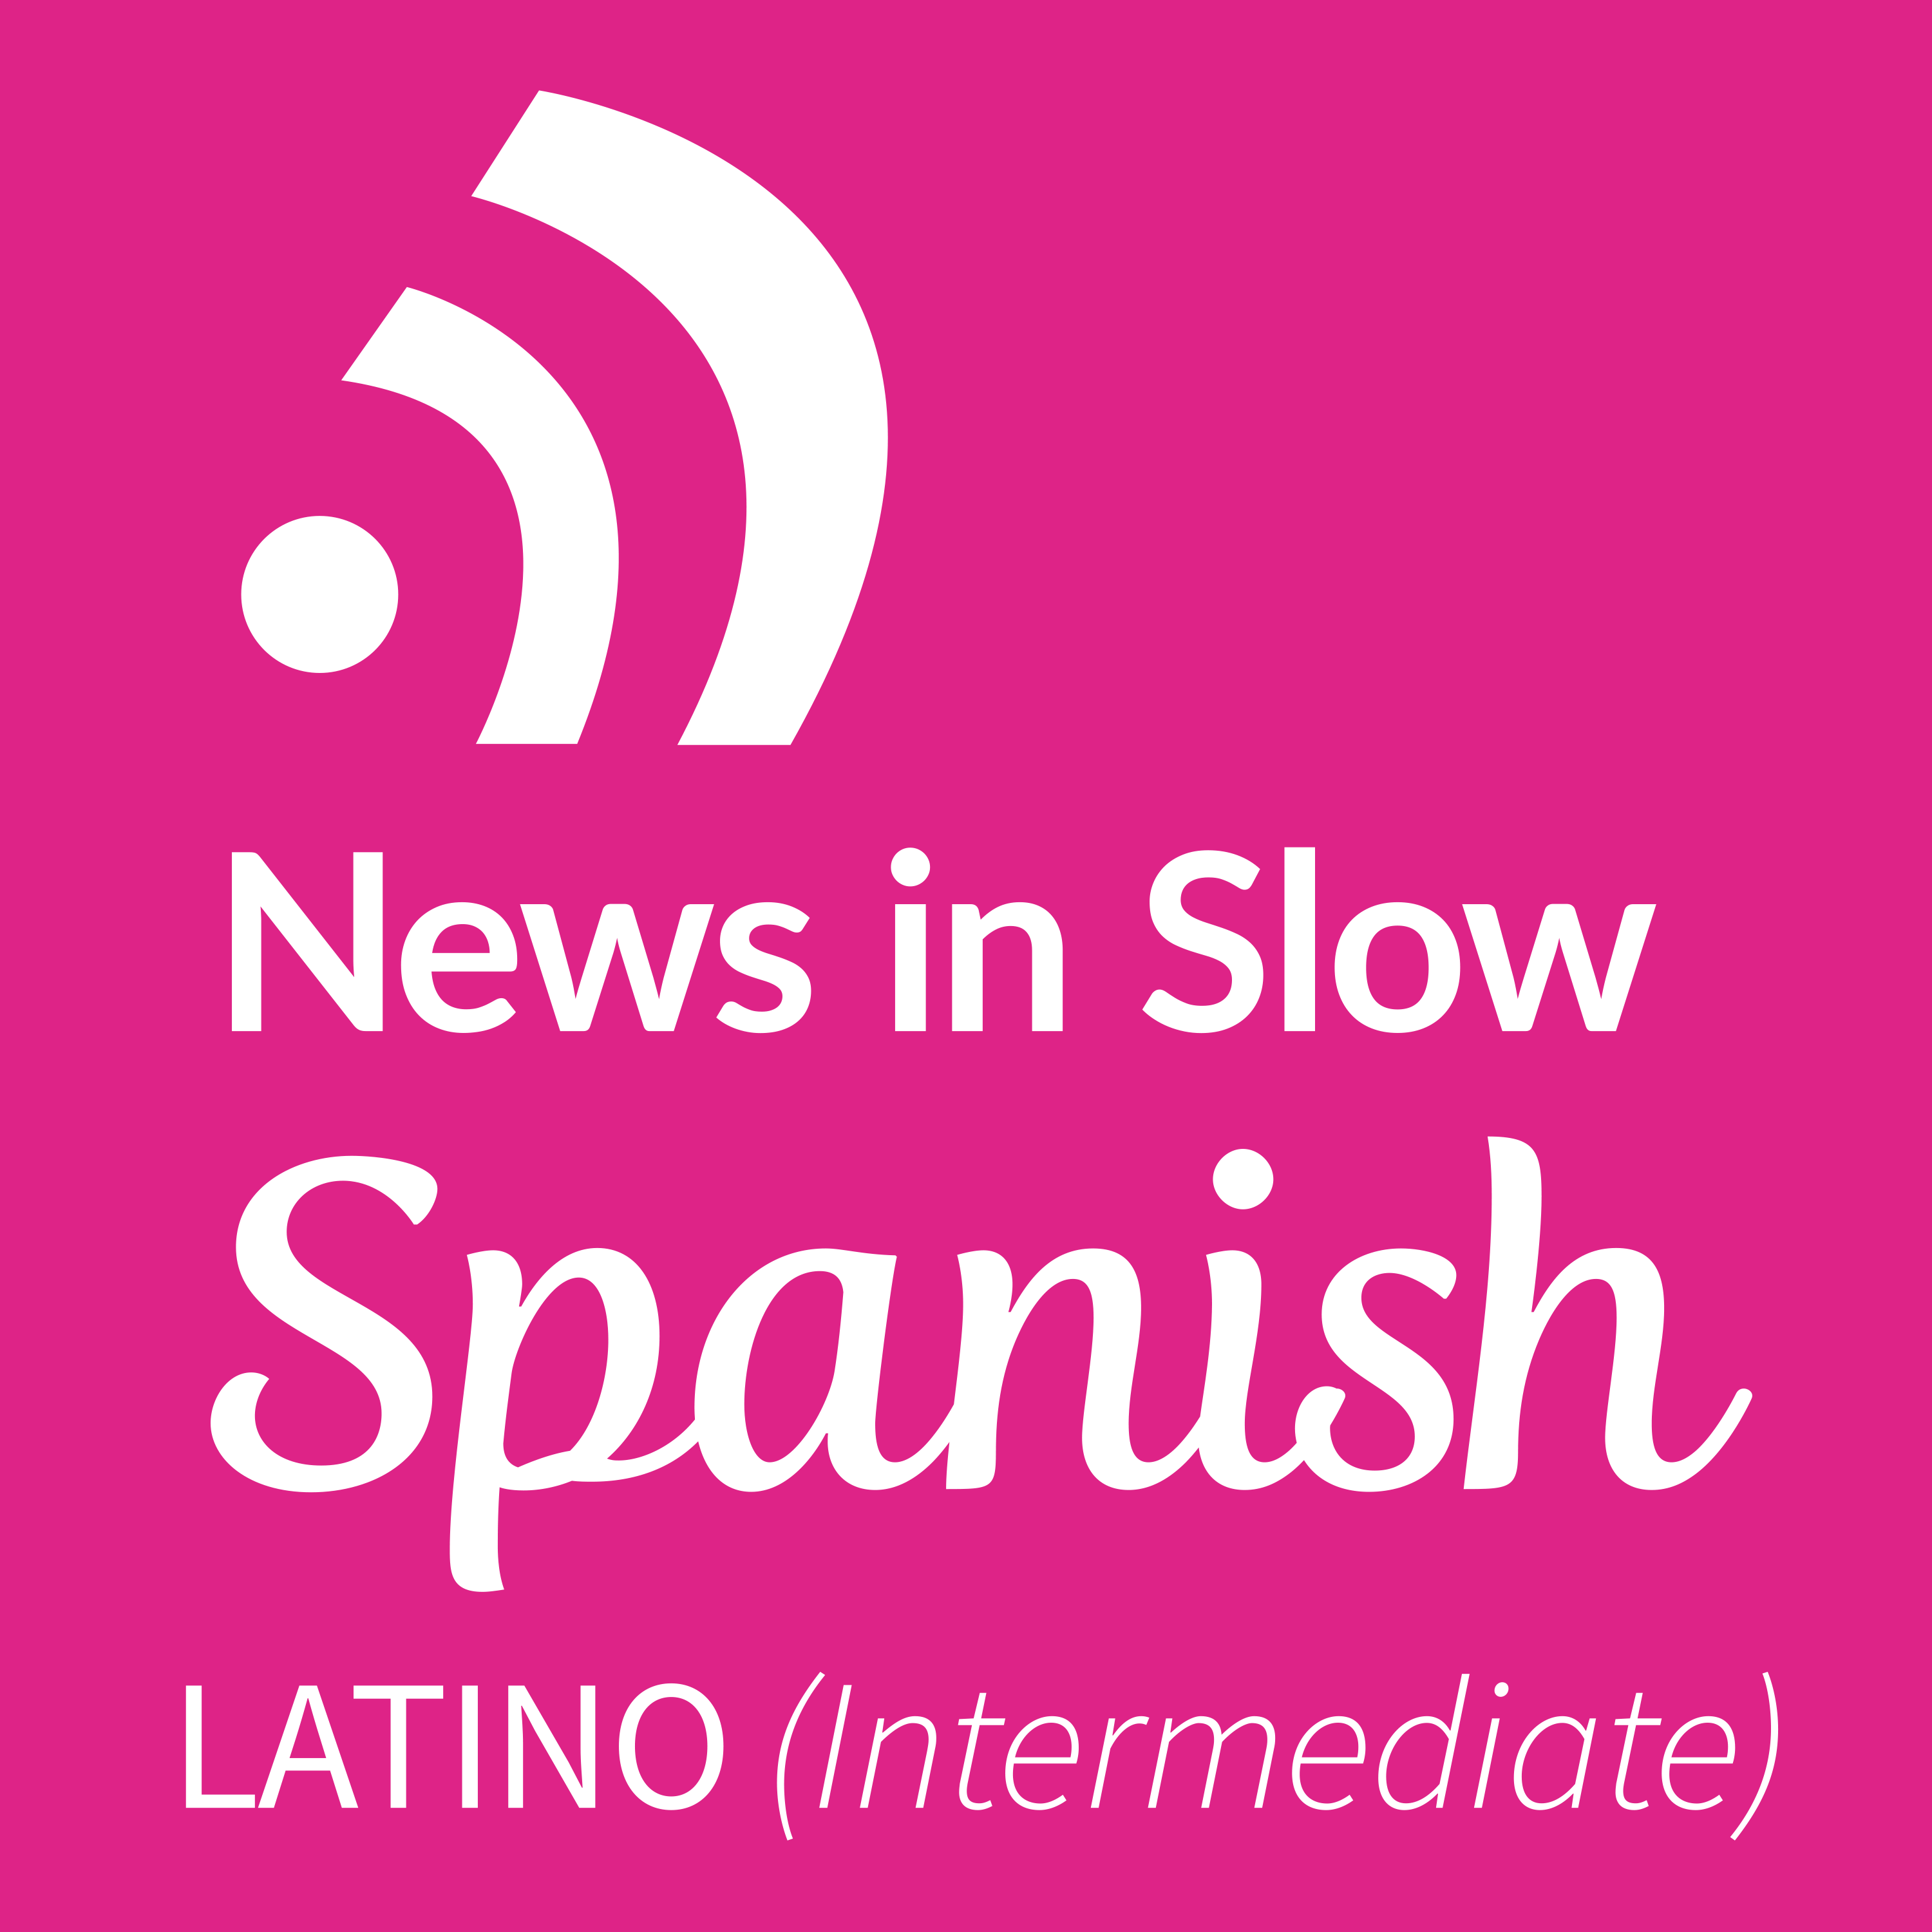 News in Slow Spanish Latino - # 187 - Learn Spanish through current events